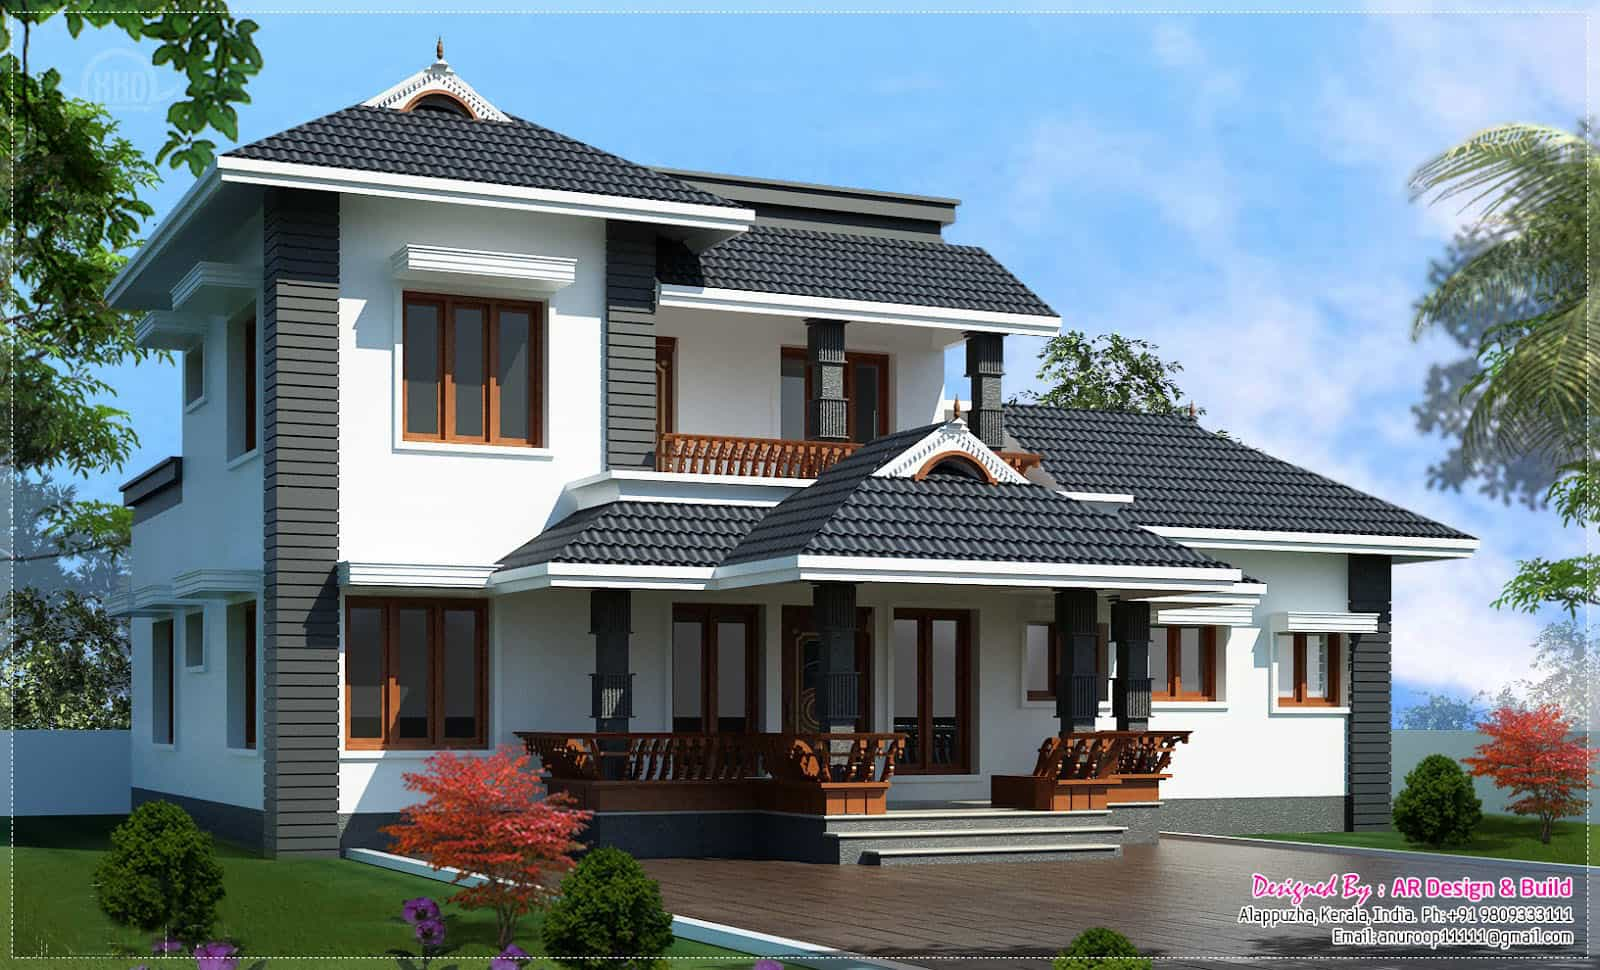 Kerala house plans 2 15 keralahouseplanner for Latest kerala style home designs